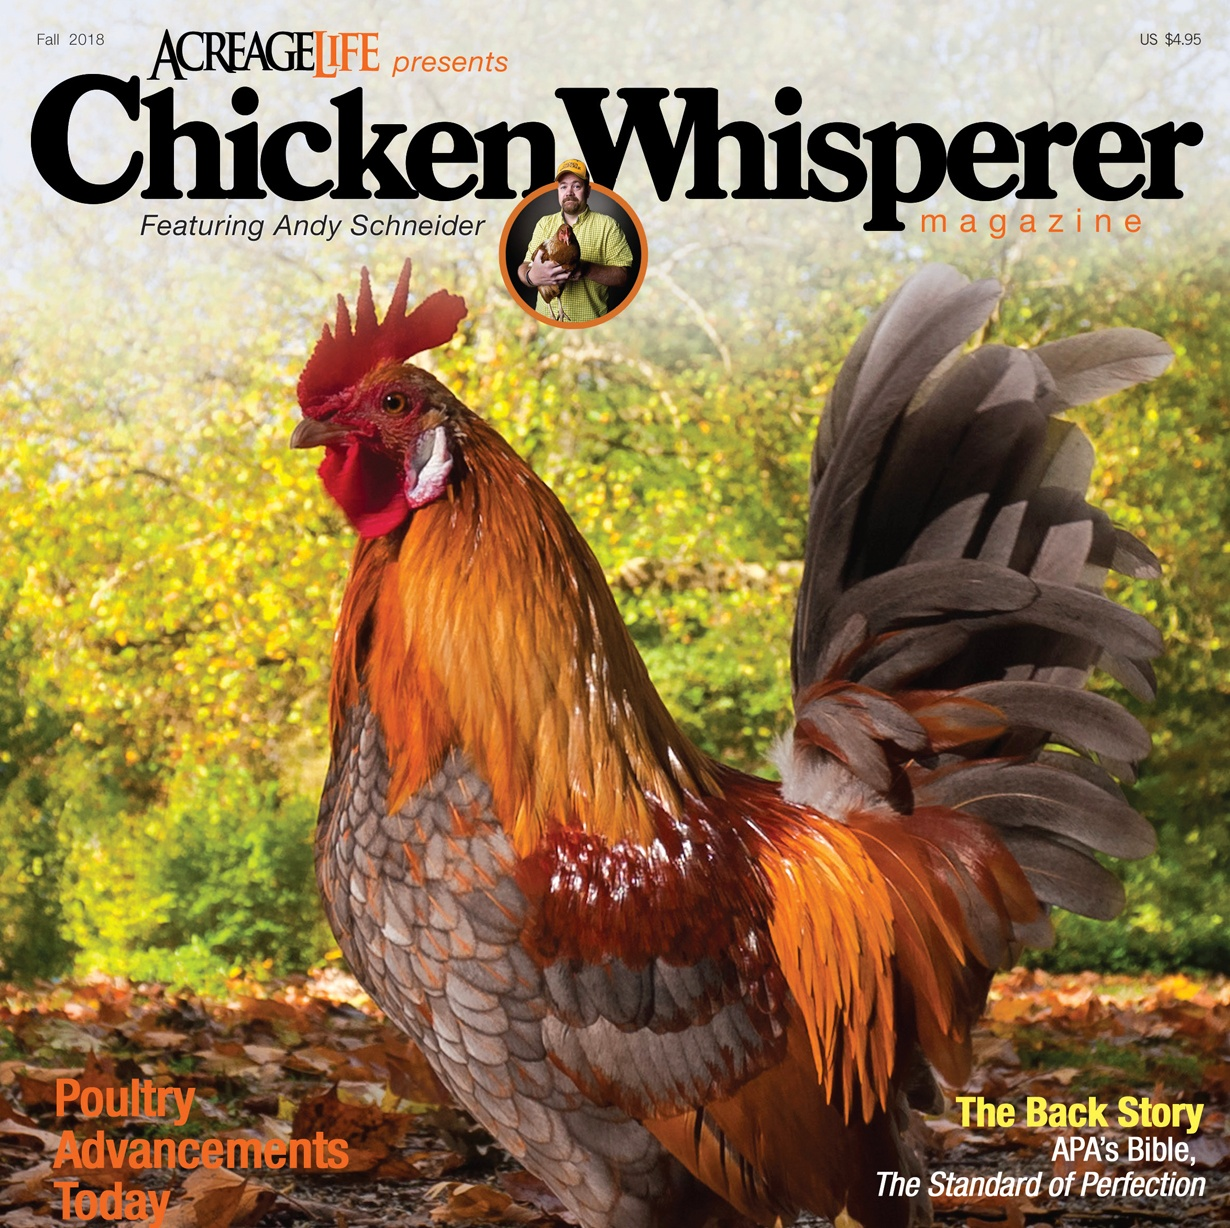 ChickenWhispererFall2018cover.jpg